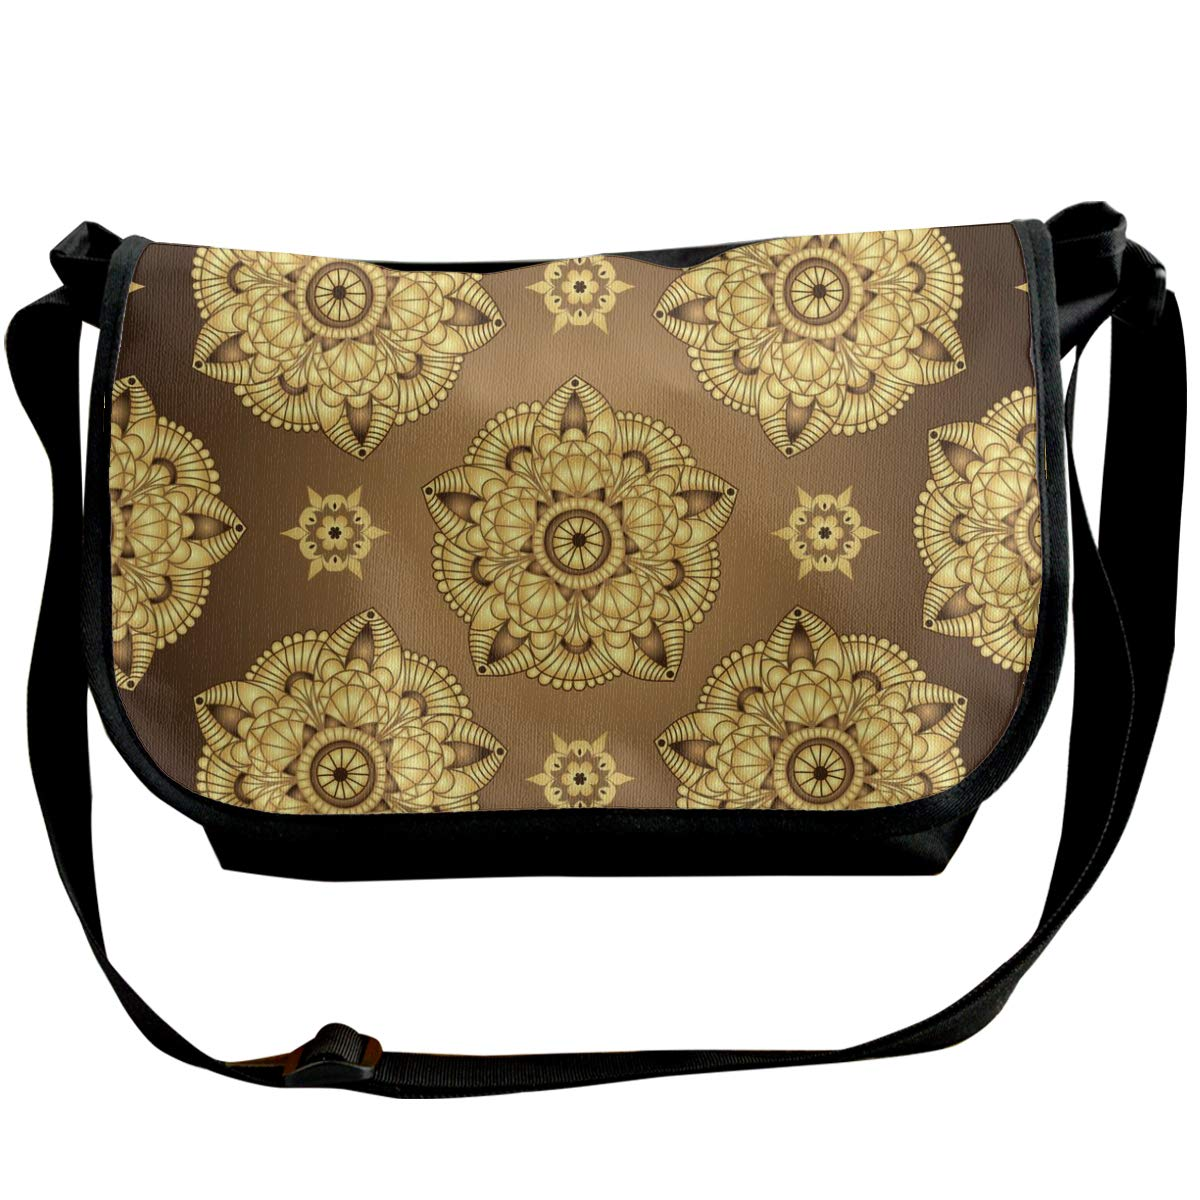 Taslilye Vintage Brown Seamless Pattern Vector Image Customized Wide Crossbody Shoulder Bag For Men And Women For Daily Work Or Travel